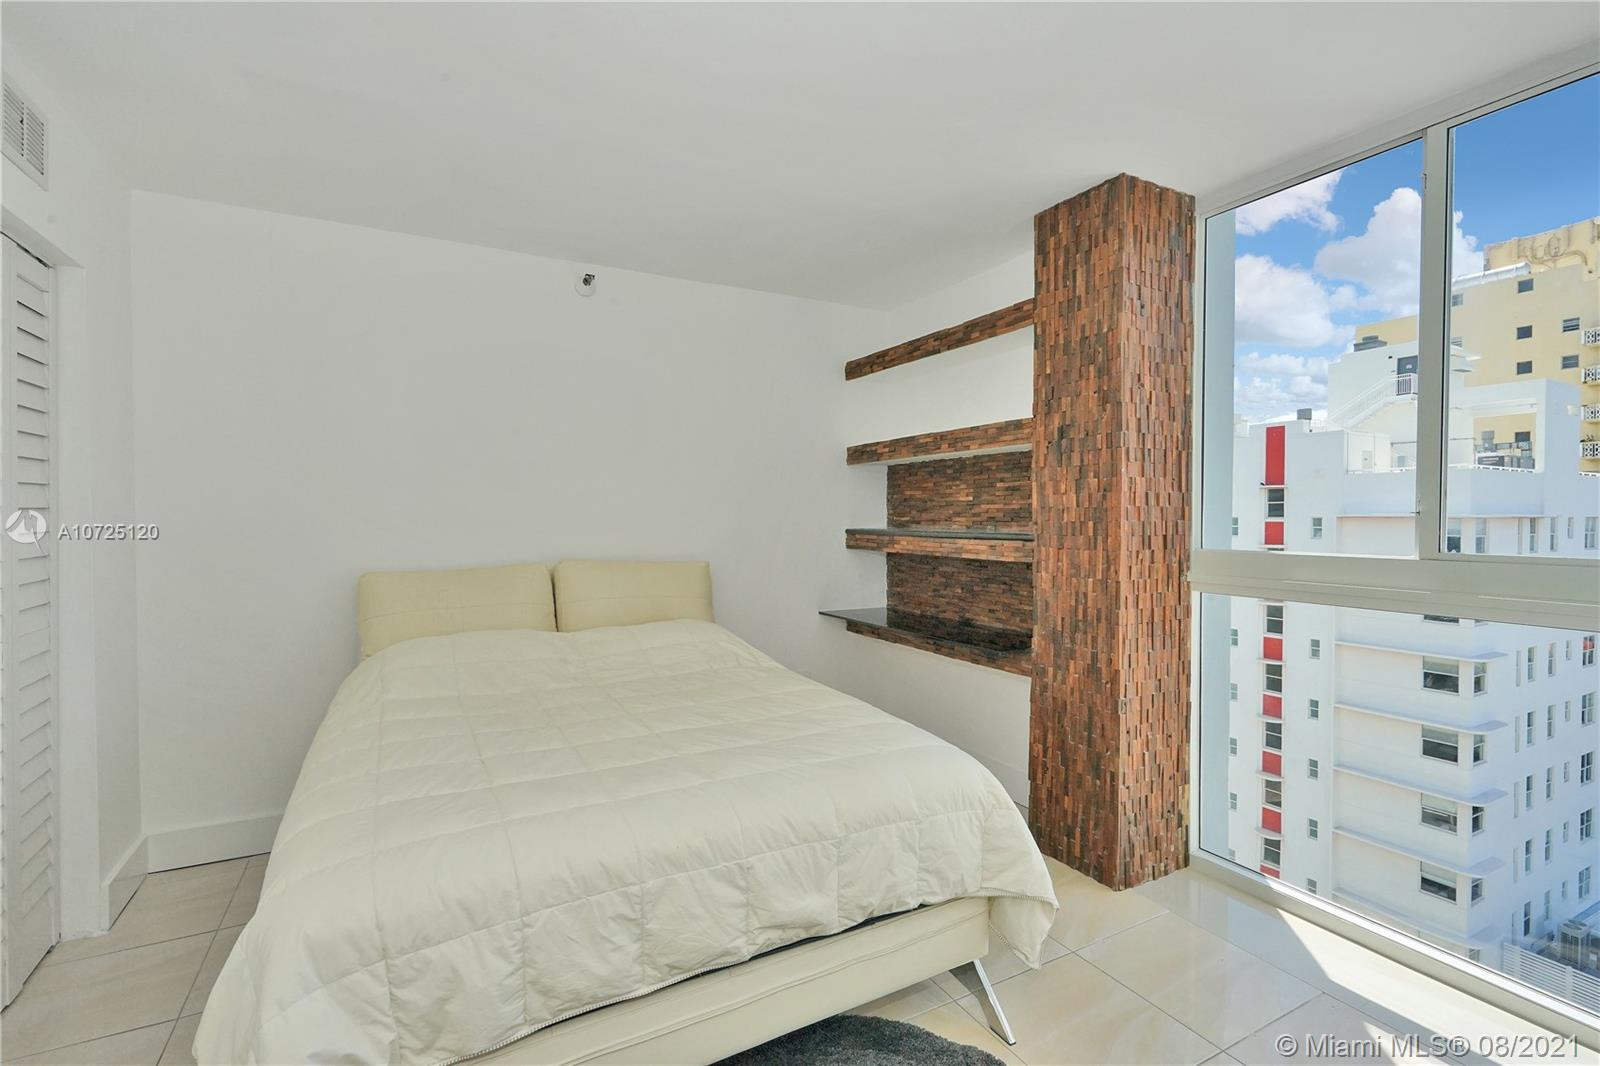 3200 Collins Ave # 6, Miami Beach, Florida 33140, 2 Bedrooms Bedrooms, ,2 BathroomsBathrooms,Residential,For Sale,3200 Collins Ave # 6,A10725120